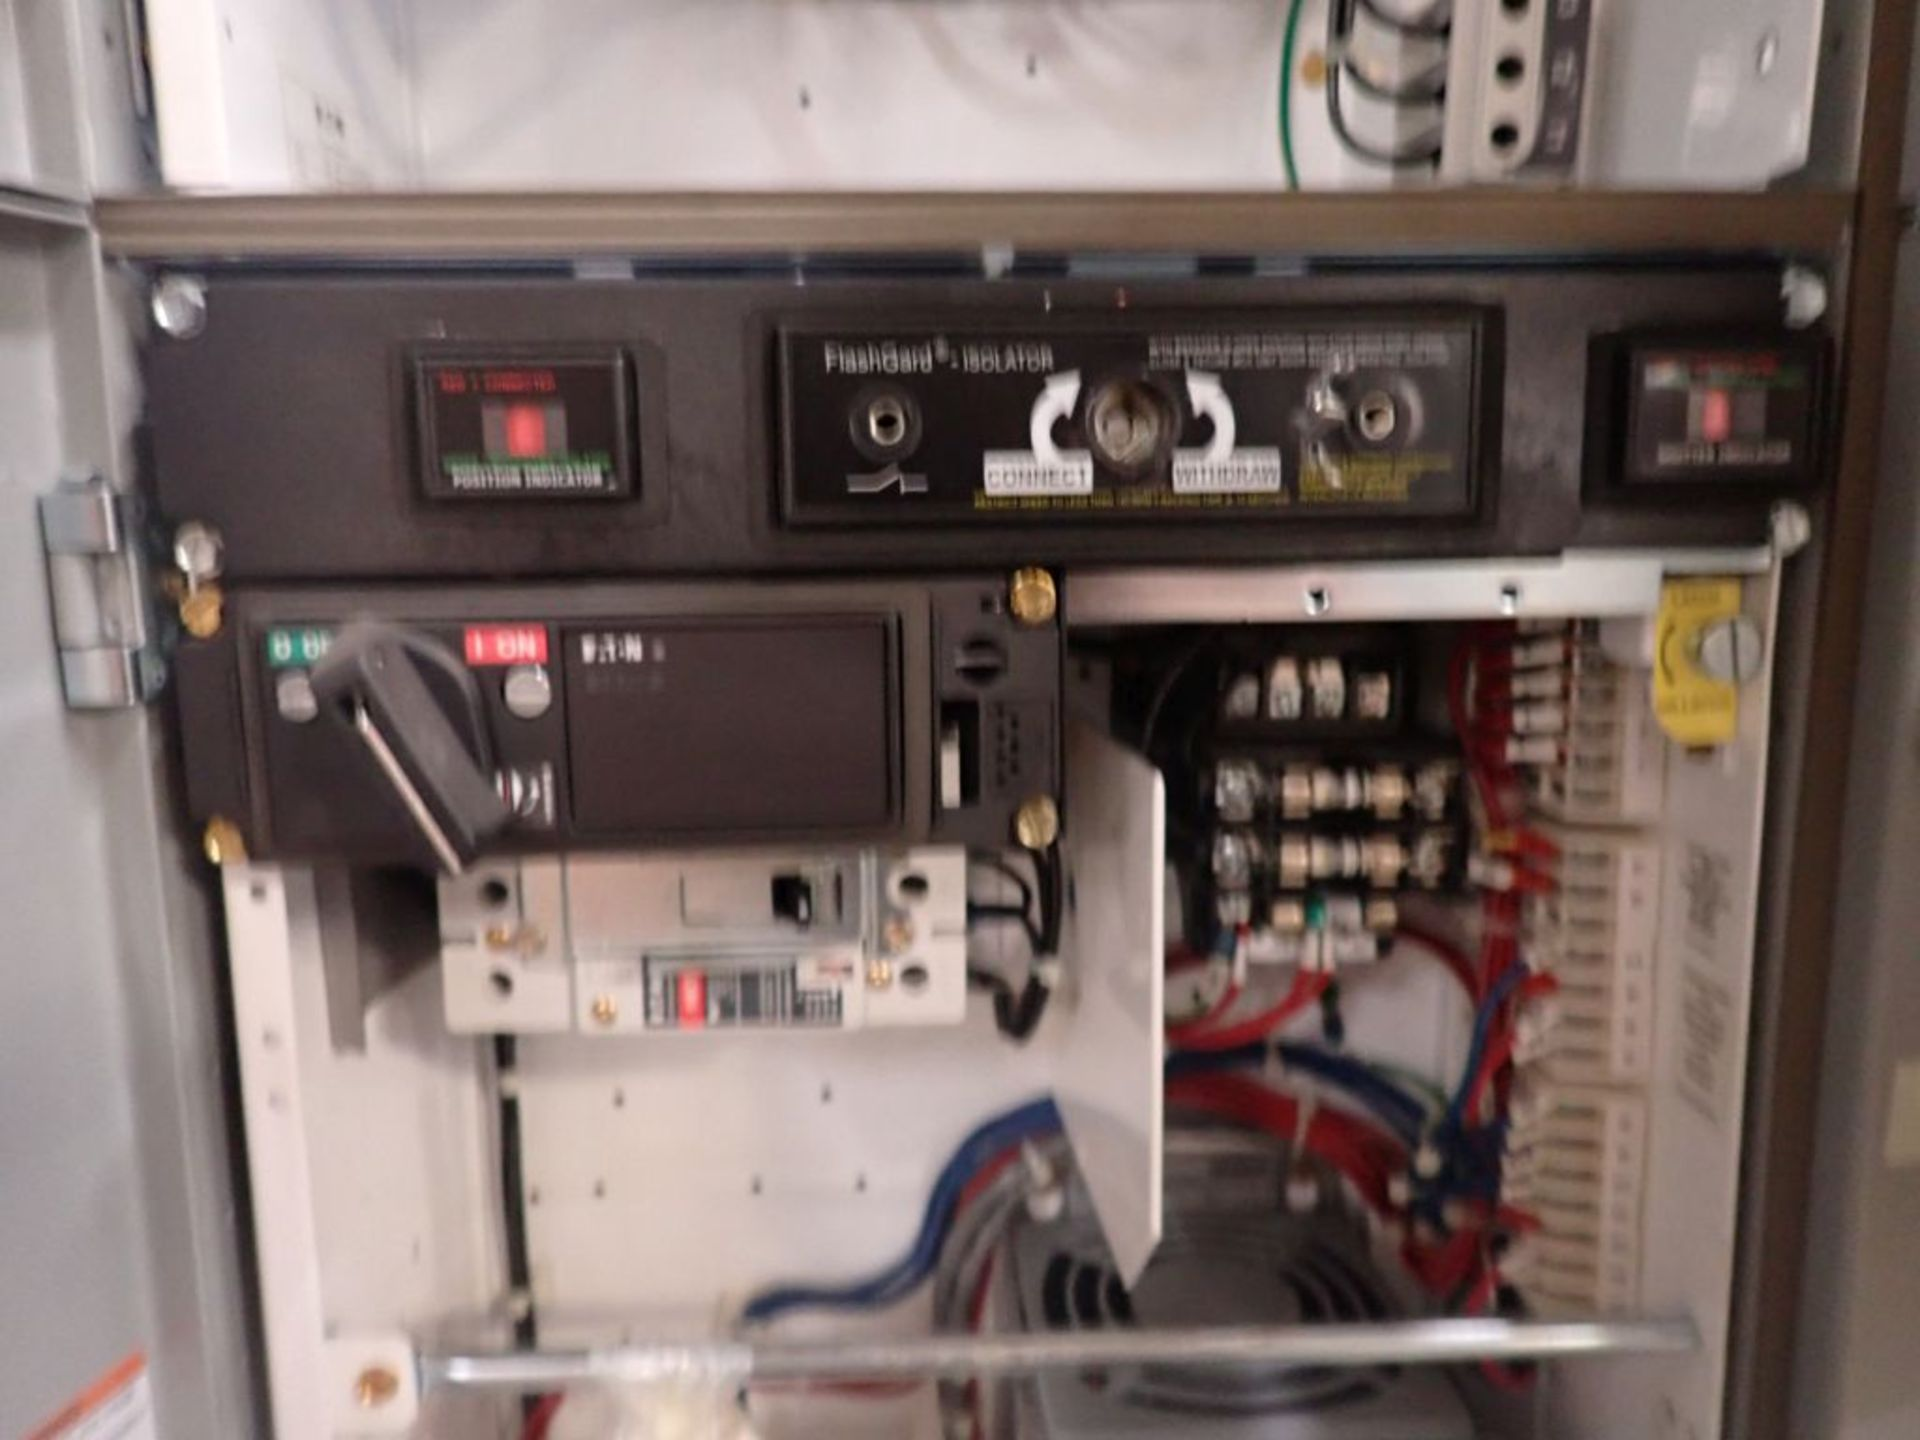 Eaton Freedom 2100 Series Motor Control Center   (4) SVX900-30A, with Eaton AF Drives, SVX9000, - Image 49 of 60